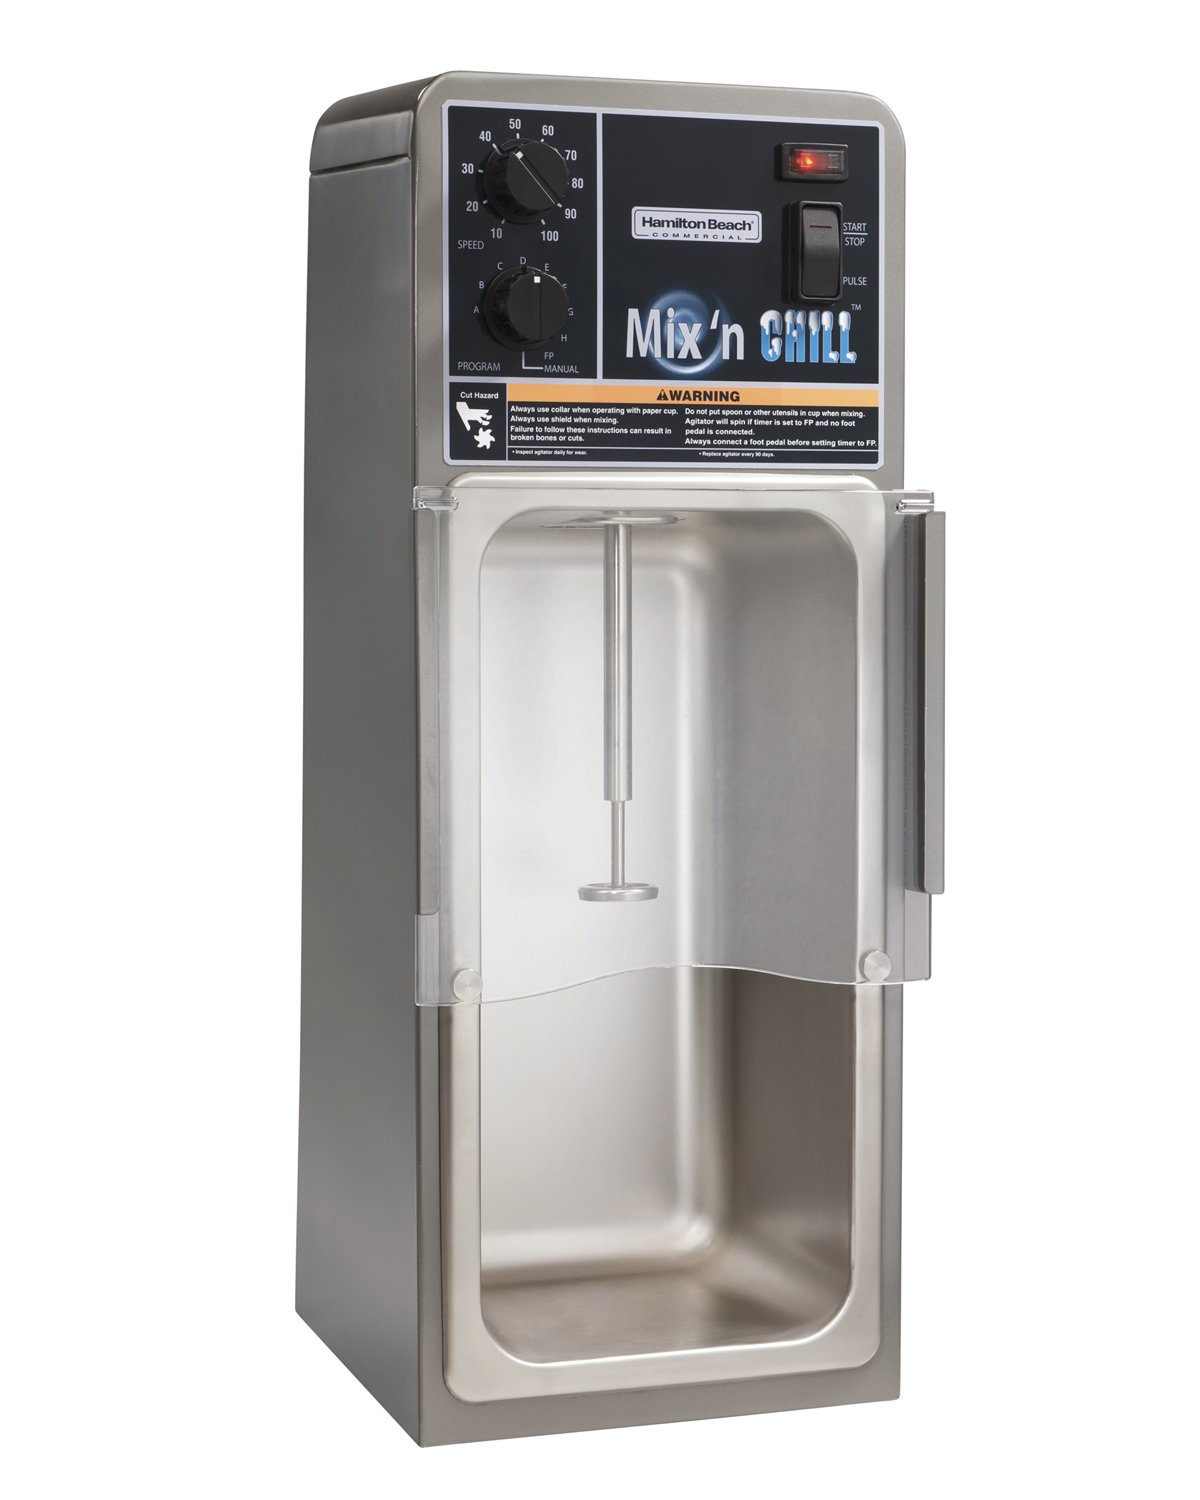 Hamilton Beach Commercial HMD900  Mix 'N Chill Programmable Drink Mixer, 25.78'' Height, 9.15'' Width, 10.14'' Length, Grey